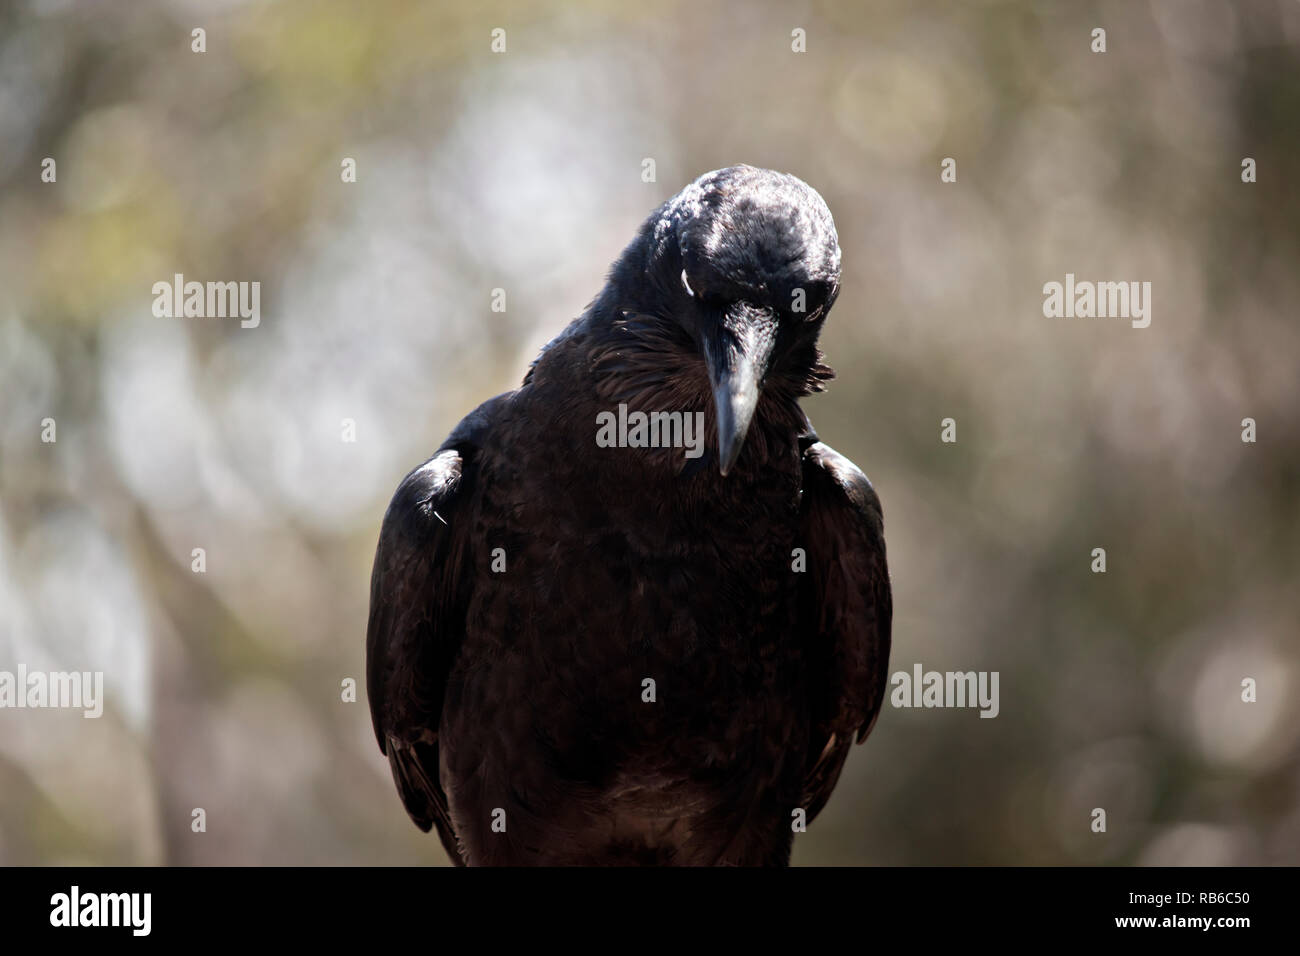 this is a close up of a raven - Stock Image